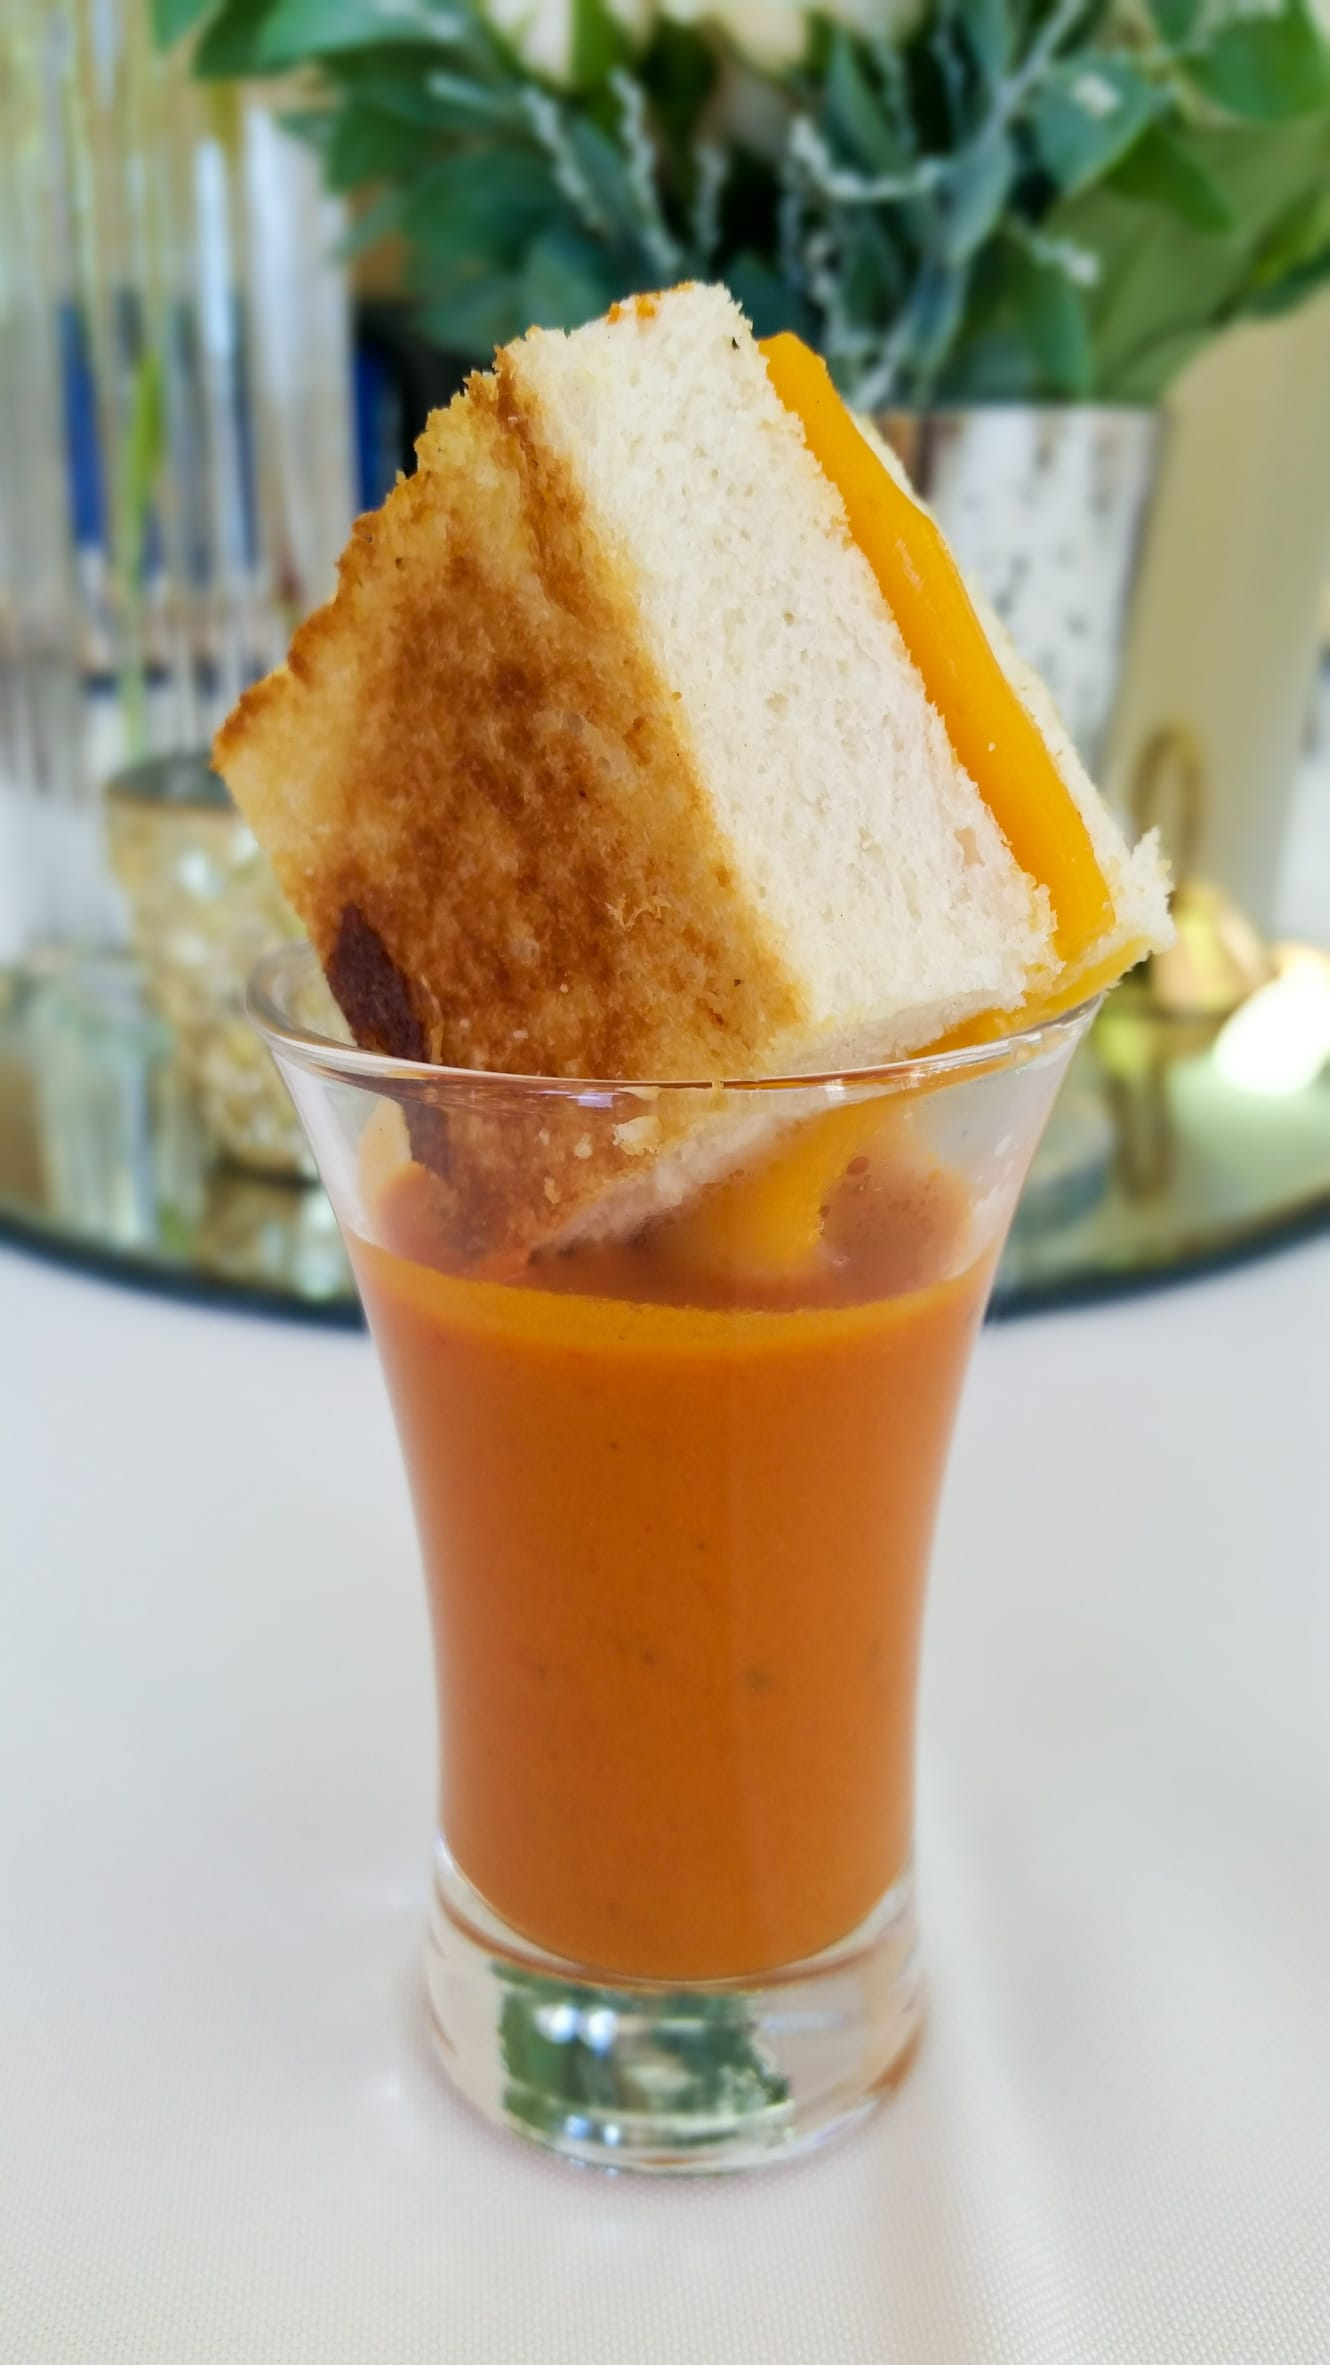 Grilled Cheese and Tomato Soup Shot